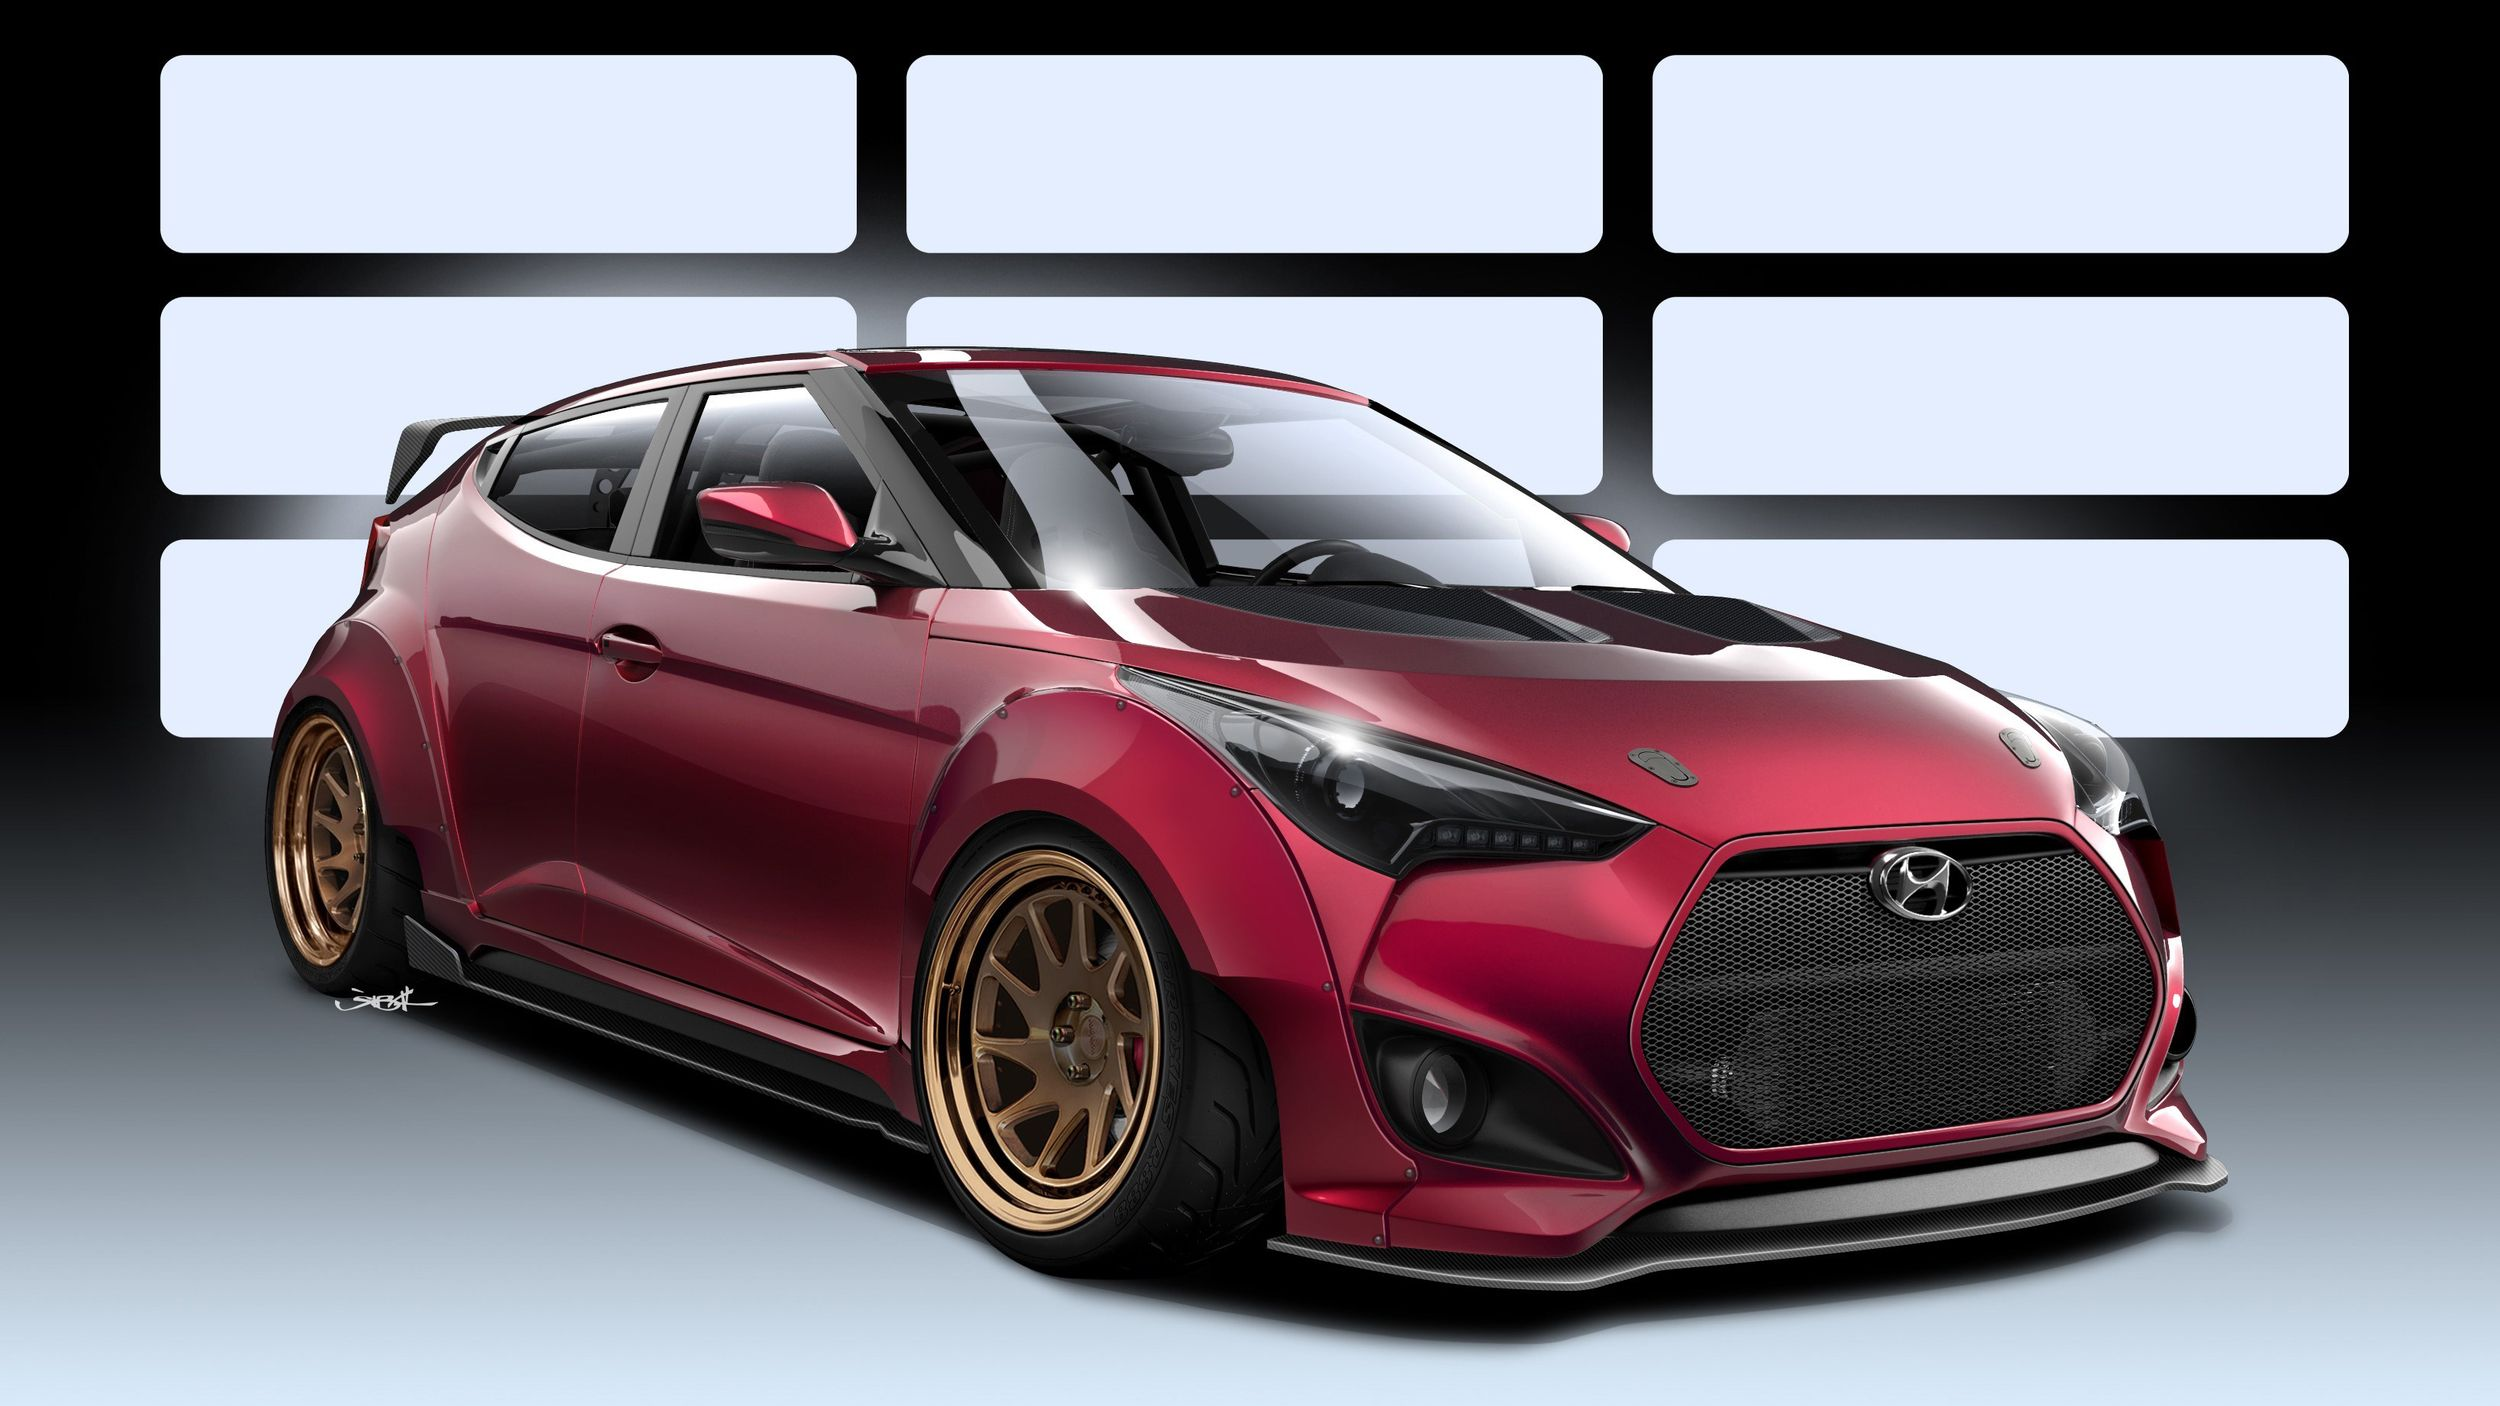 turbo wallpapers r spec wide hyundai hd car wallpaper veloster